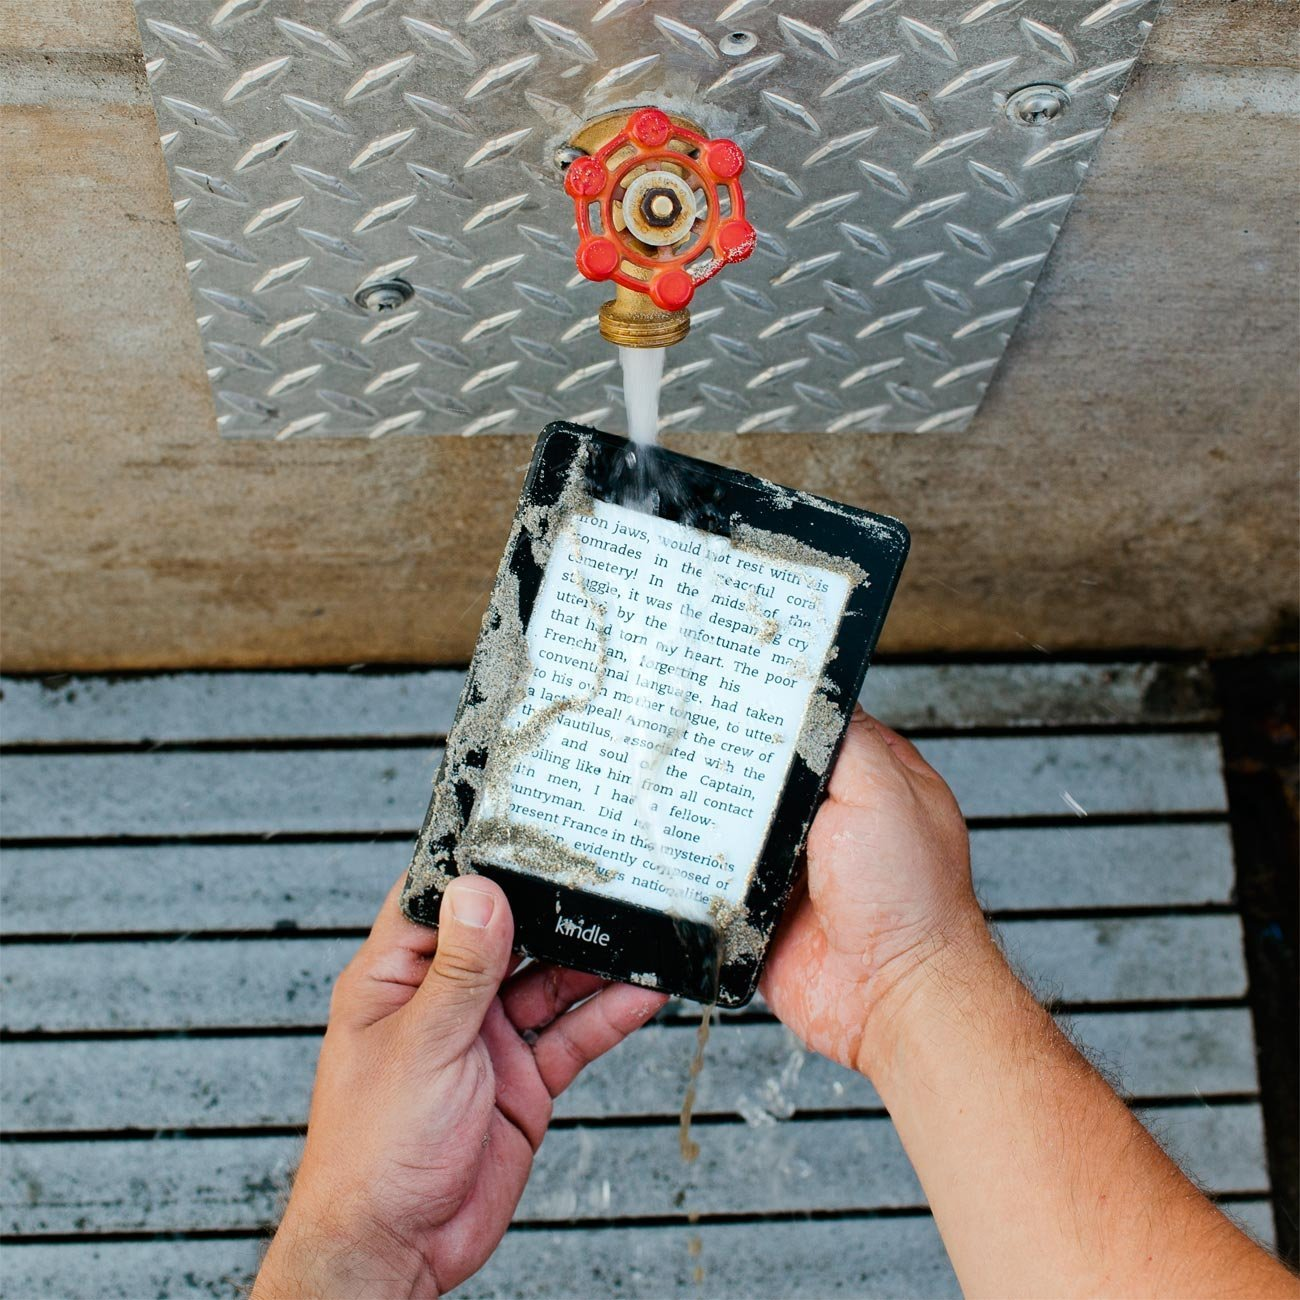 Amazon: Waterfi Waterproofed Ereader  Take Your Ebooks In The Pool,  Bath, Spa With No Case Needed (wifi Connectivity): Electronics